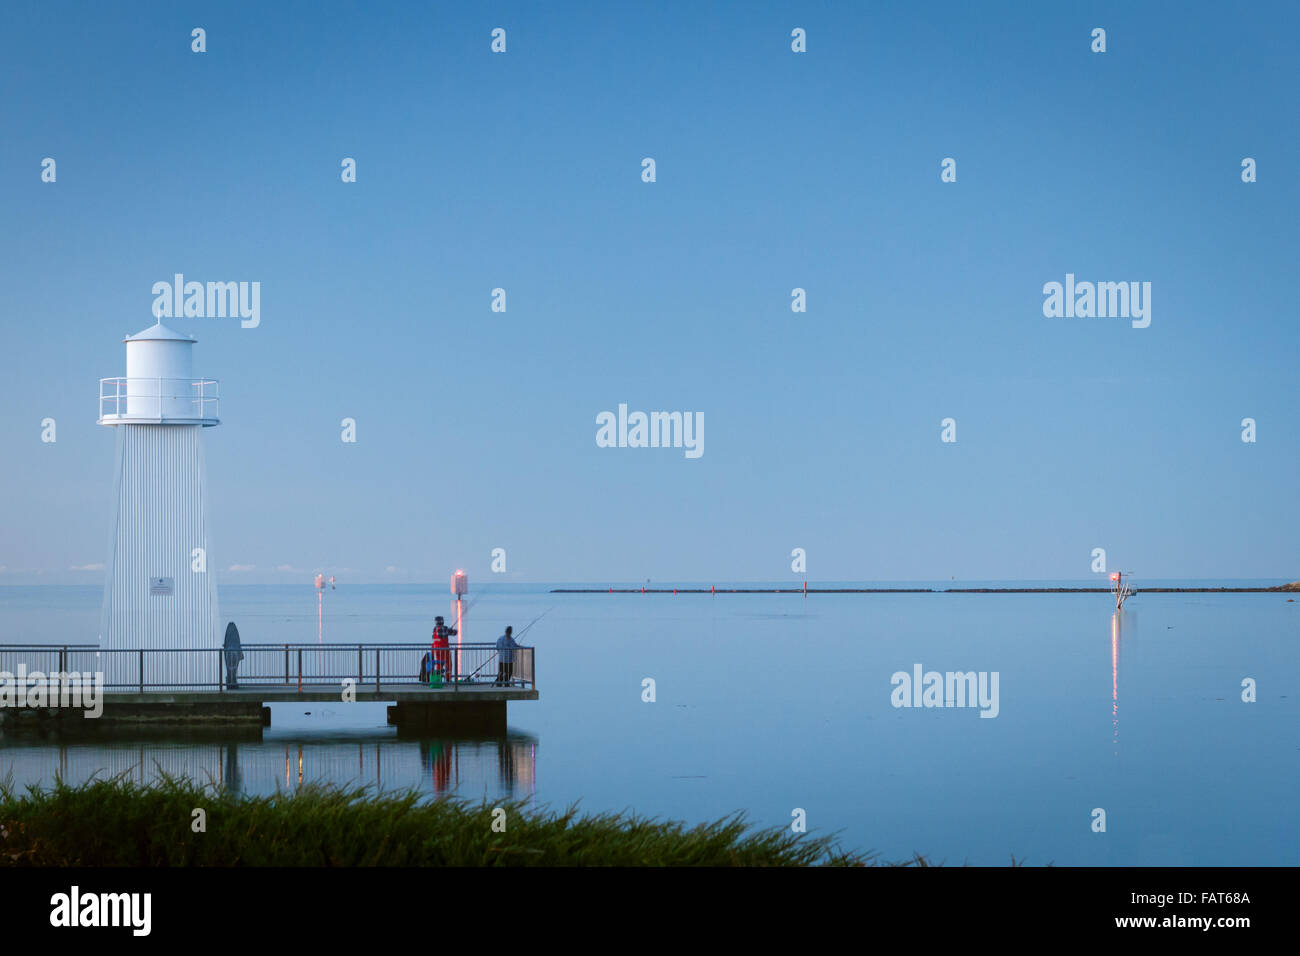 As the sun sets some locals fish near the mouth of the Mersey River in Devonport, Tasmania. - Stock Image